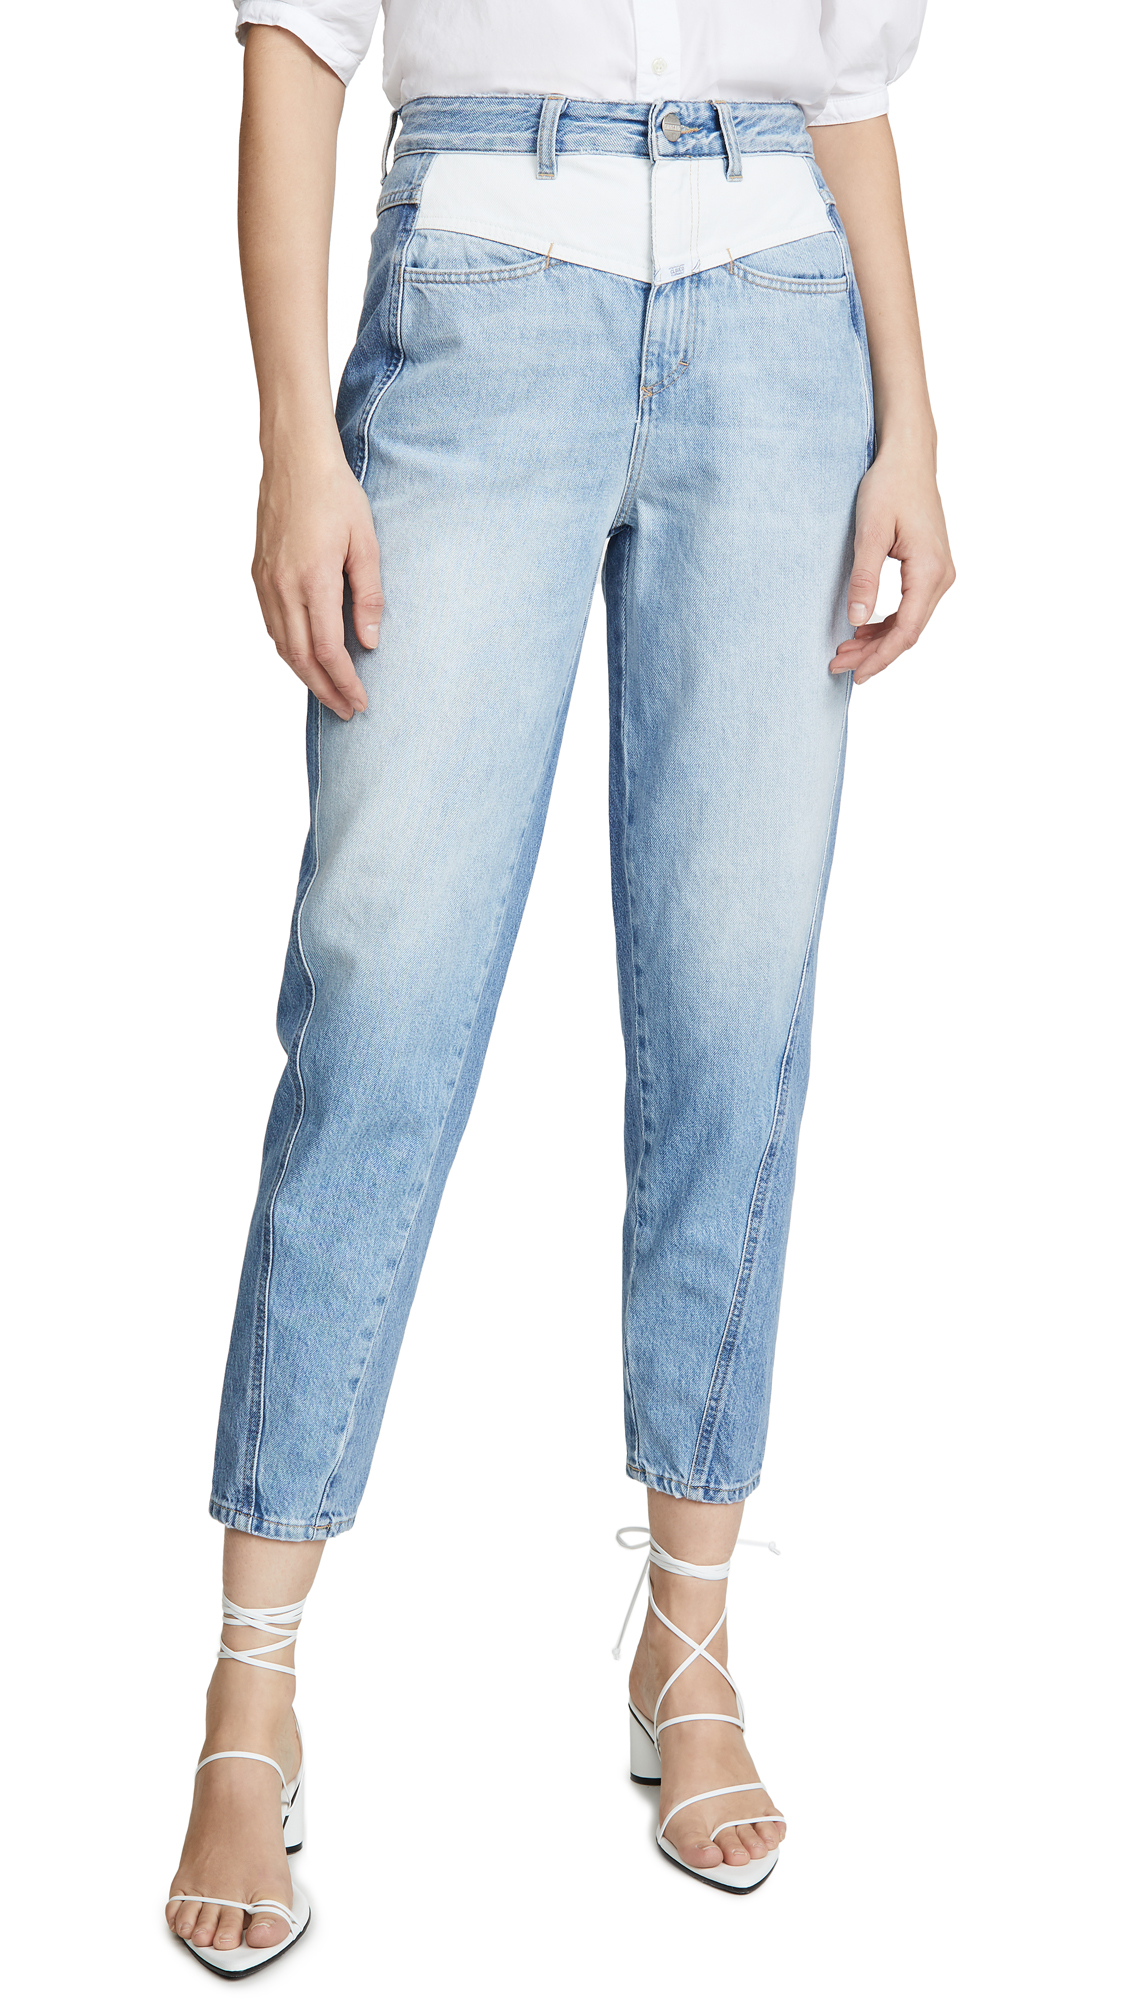 Everyday Jeans at Shopbop